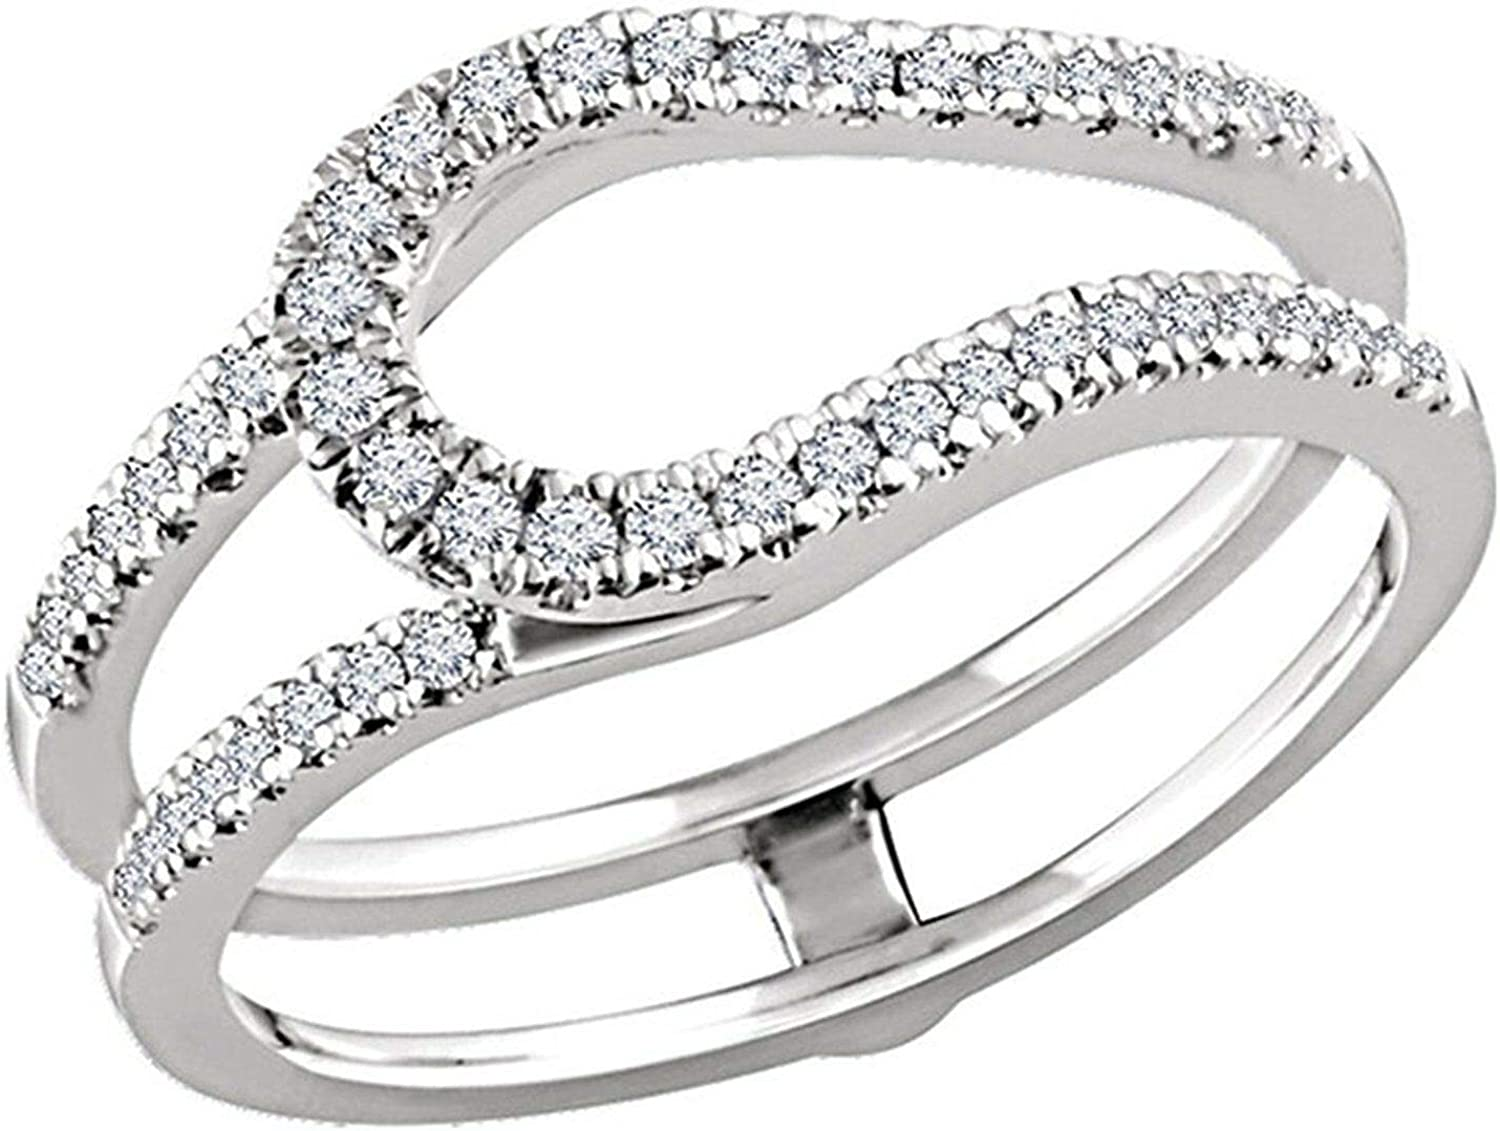 Palaksh Year-end annual account Jewelry Round Cut White Gold Over 925 Diamond 14K Financial sales sale